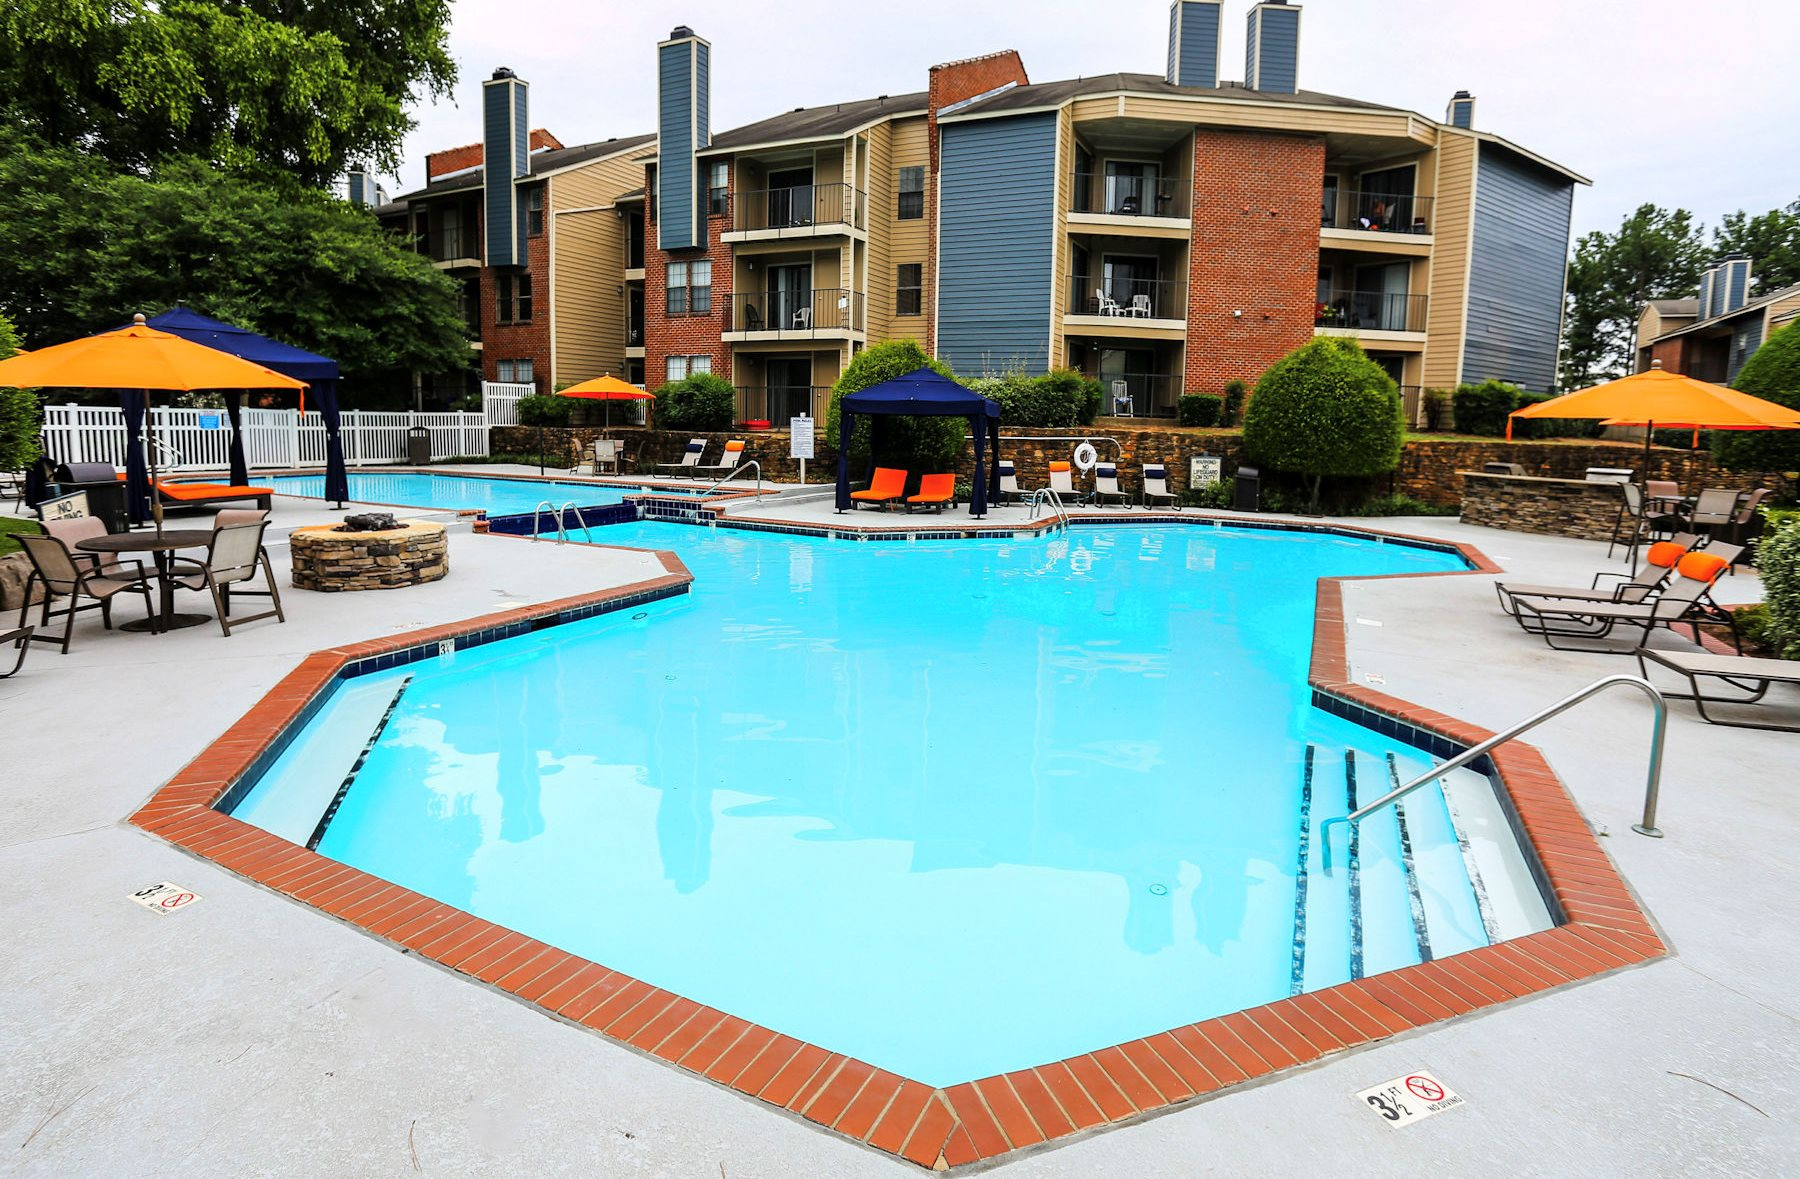 beacon hill apartments in charlotte nc